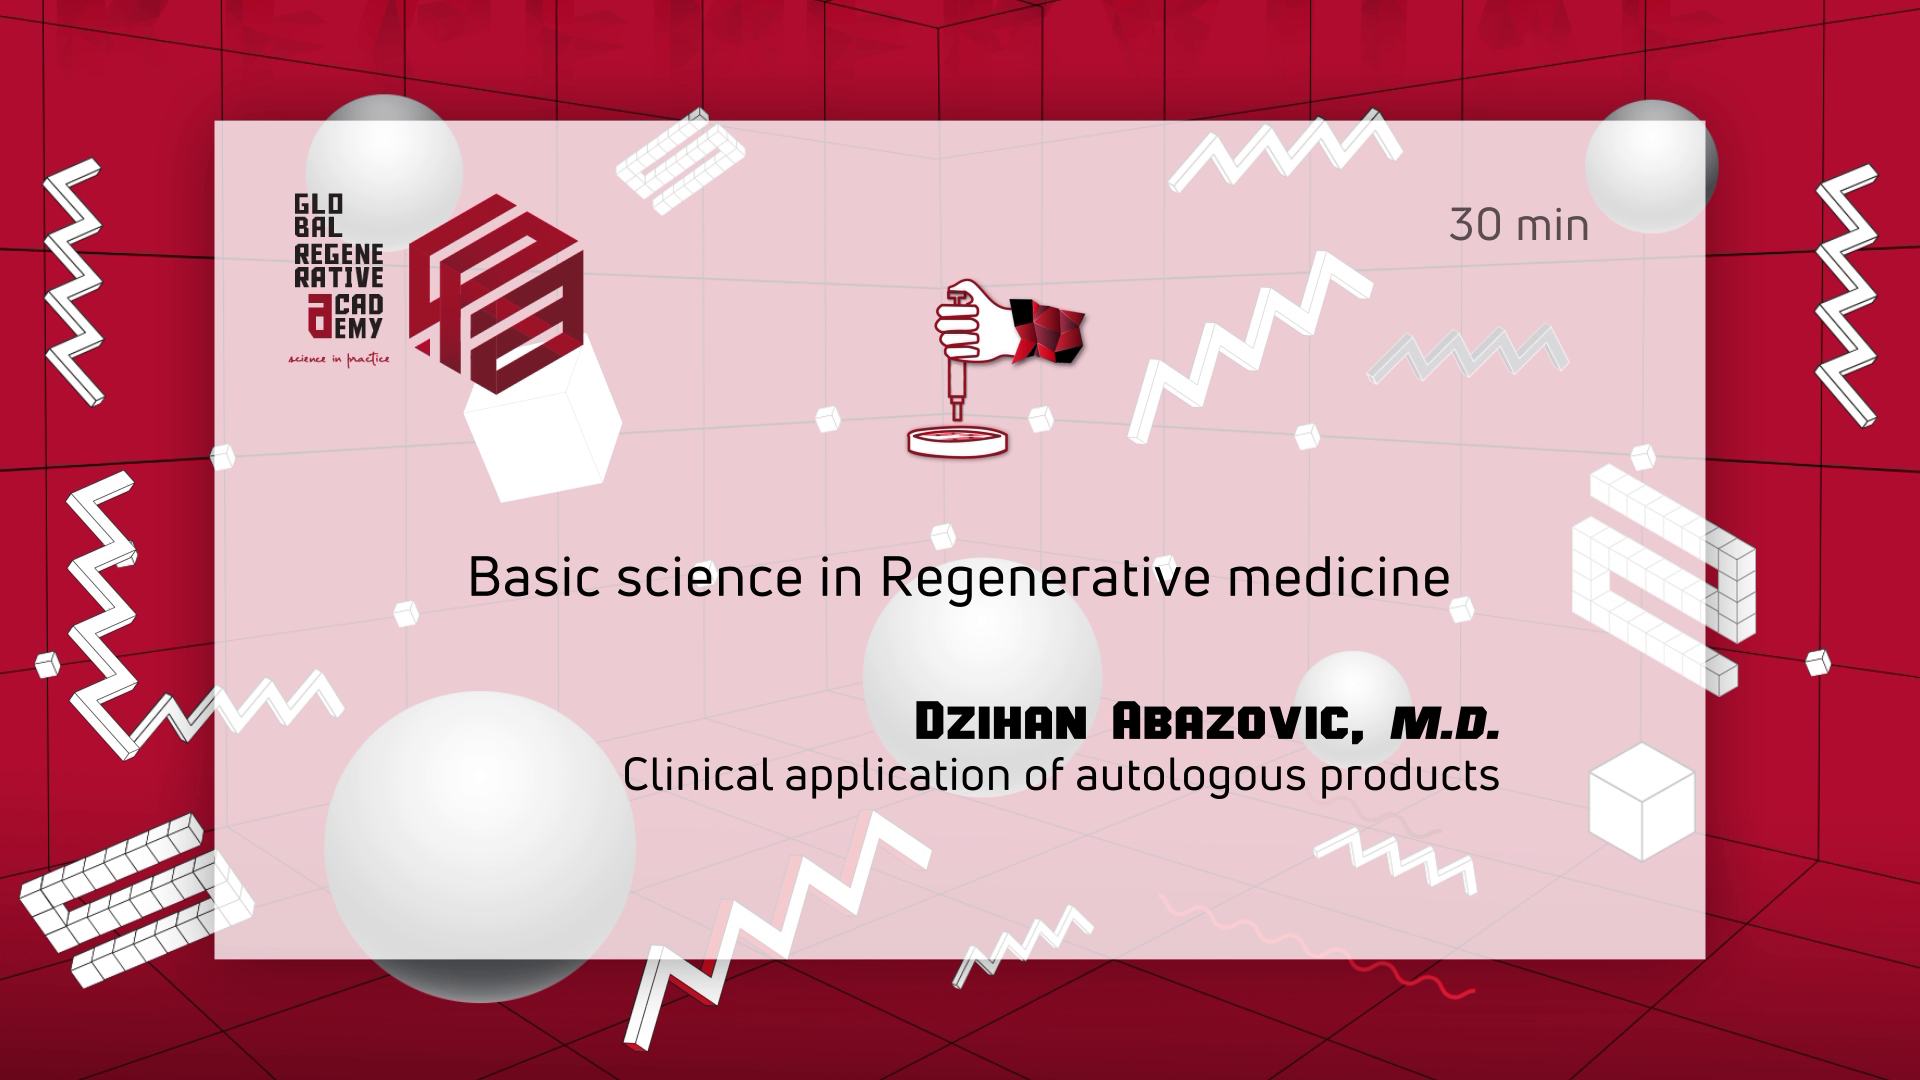 Dzihan Abazovic – Clinical application of autologous products